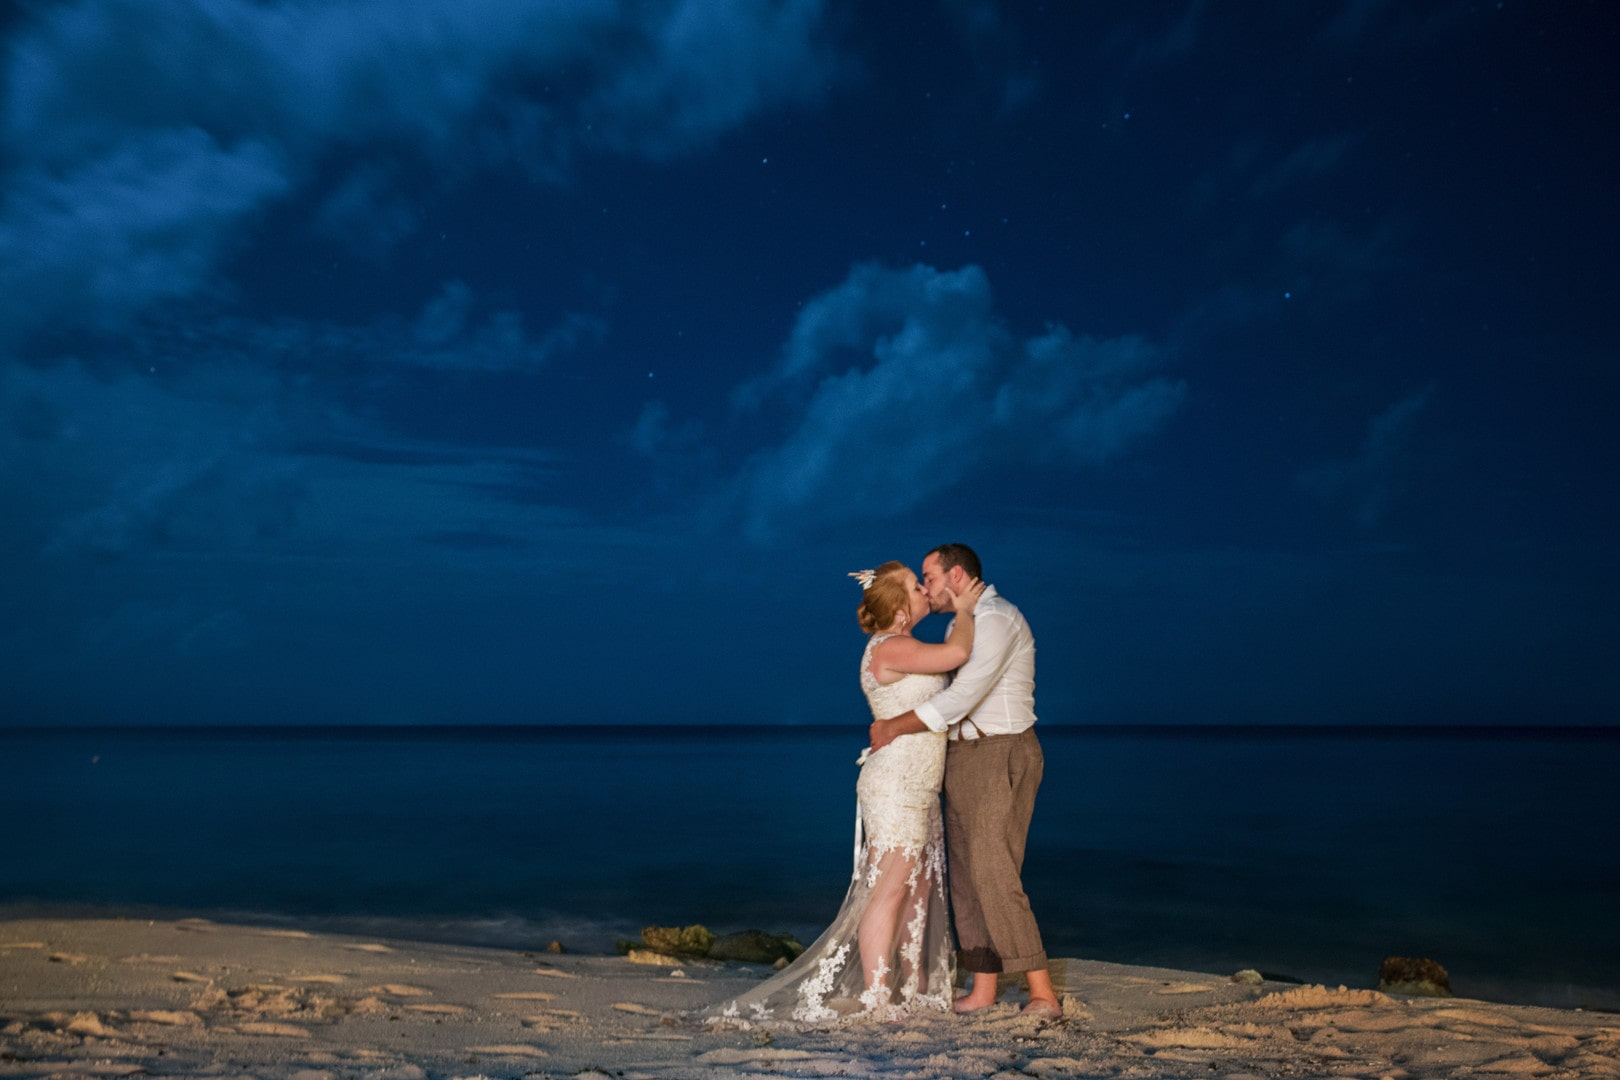 Jaclyn & Josh's Destination Wedding In Cozumel, Mexico, Photography by Tina Joiner Photography for Destination Wedding Blog Adriana Weddings